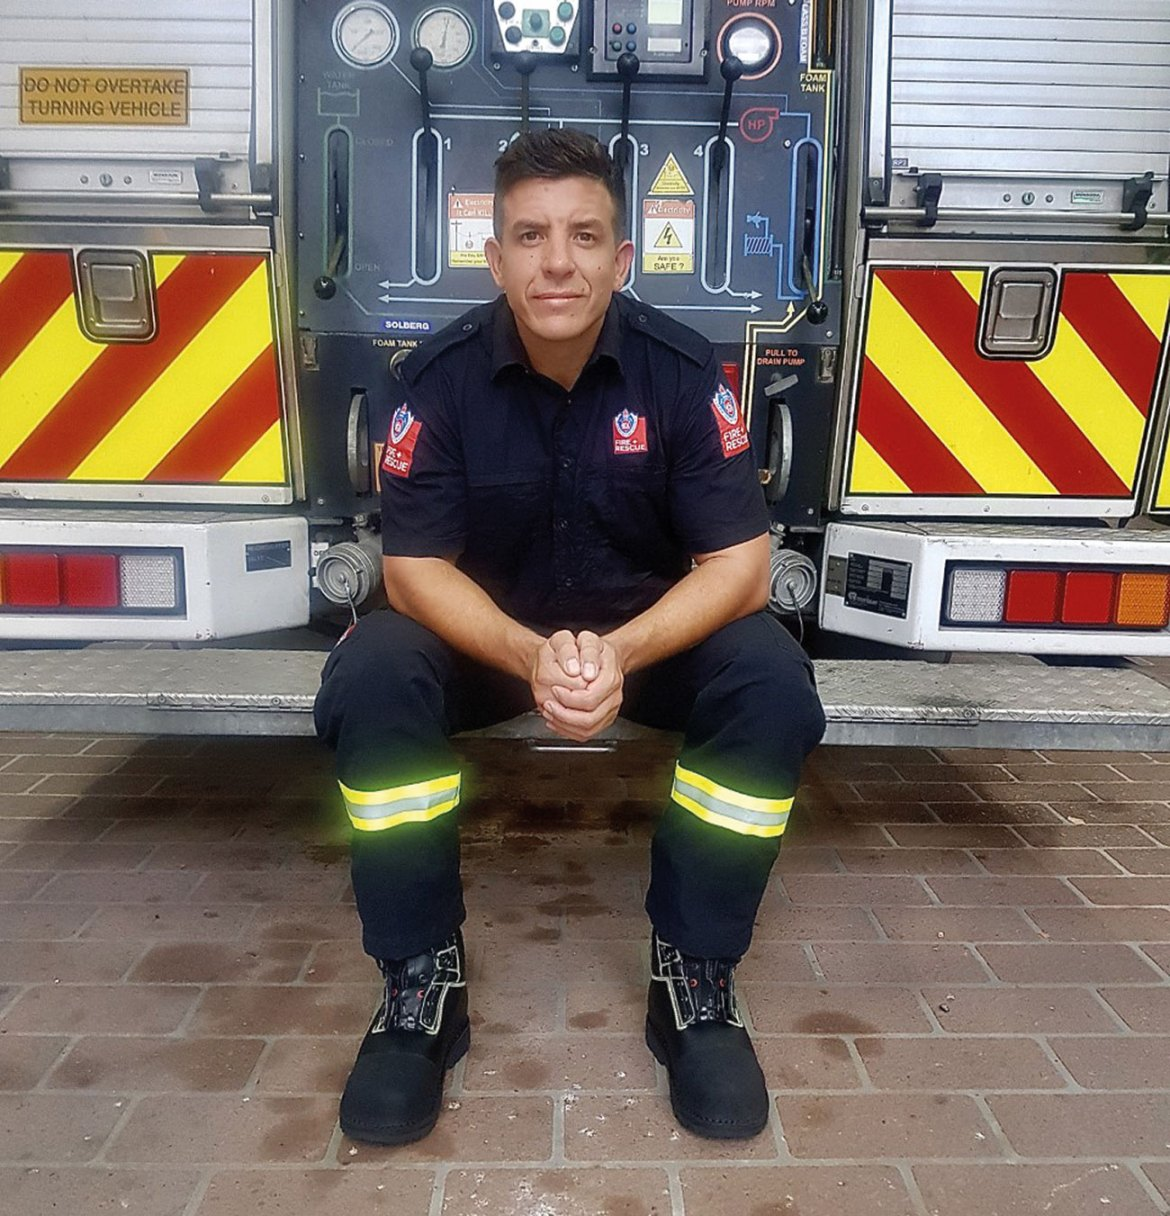 Firefighter Dixon, on duty, wearing his Jolly structural firefighitng boots.